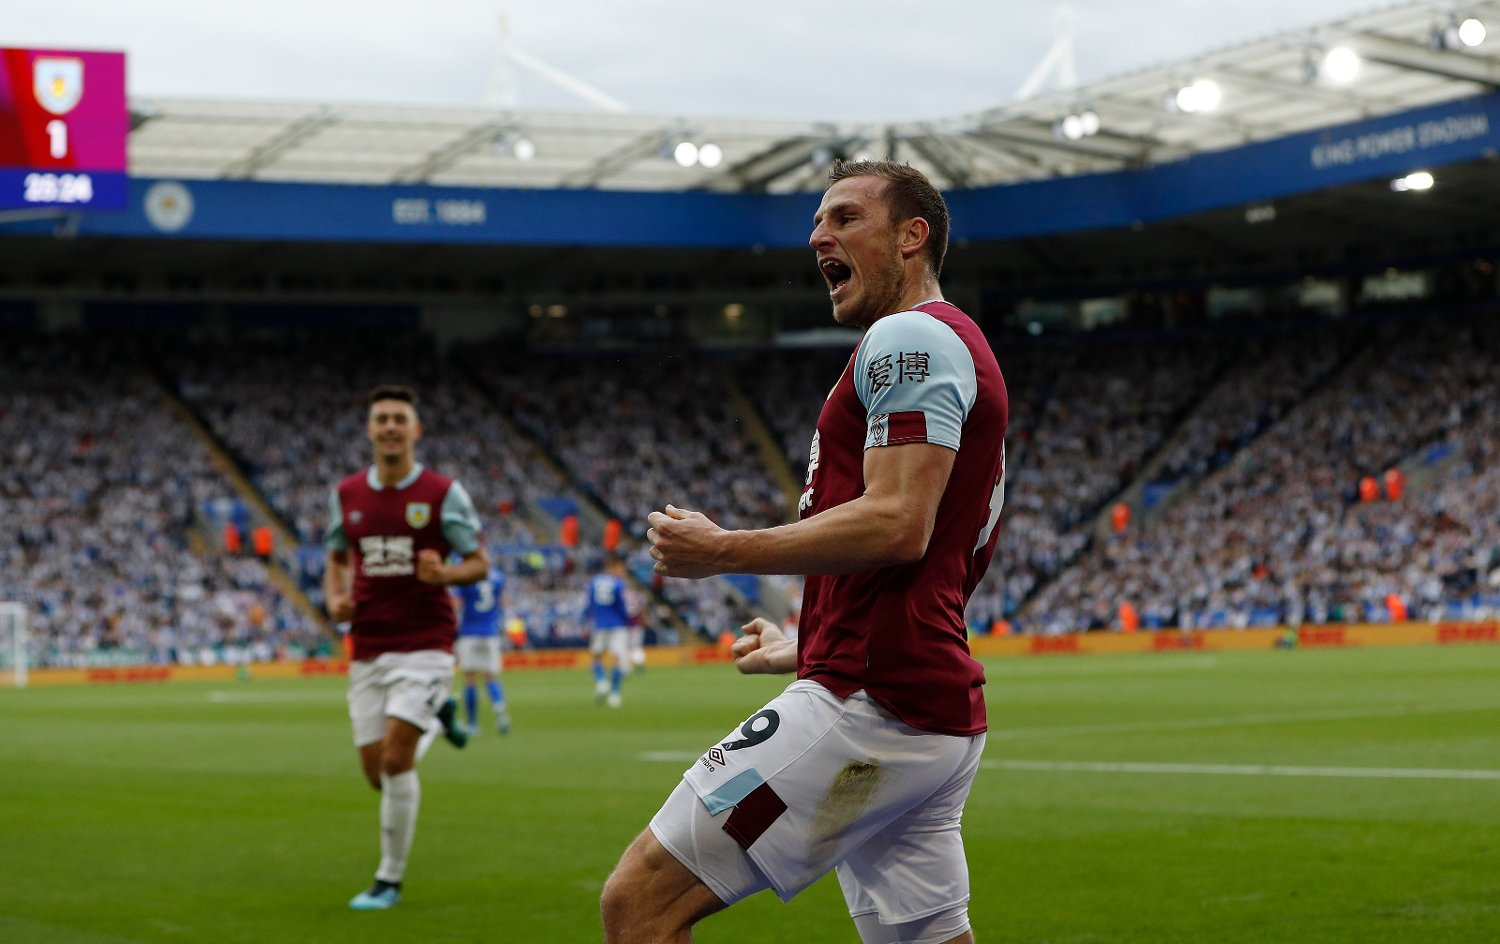 Chris Wood of Burnley celebrates scoring against Leicester City during the Premier League match at the King Power Stadium, Leicester. Picture date: 19th October 2019. Picture credit should read: Darren Staples/Sportimage via PA Images